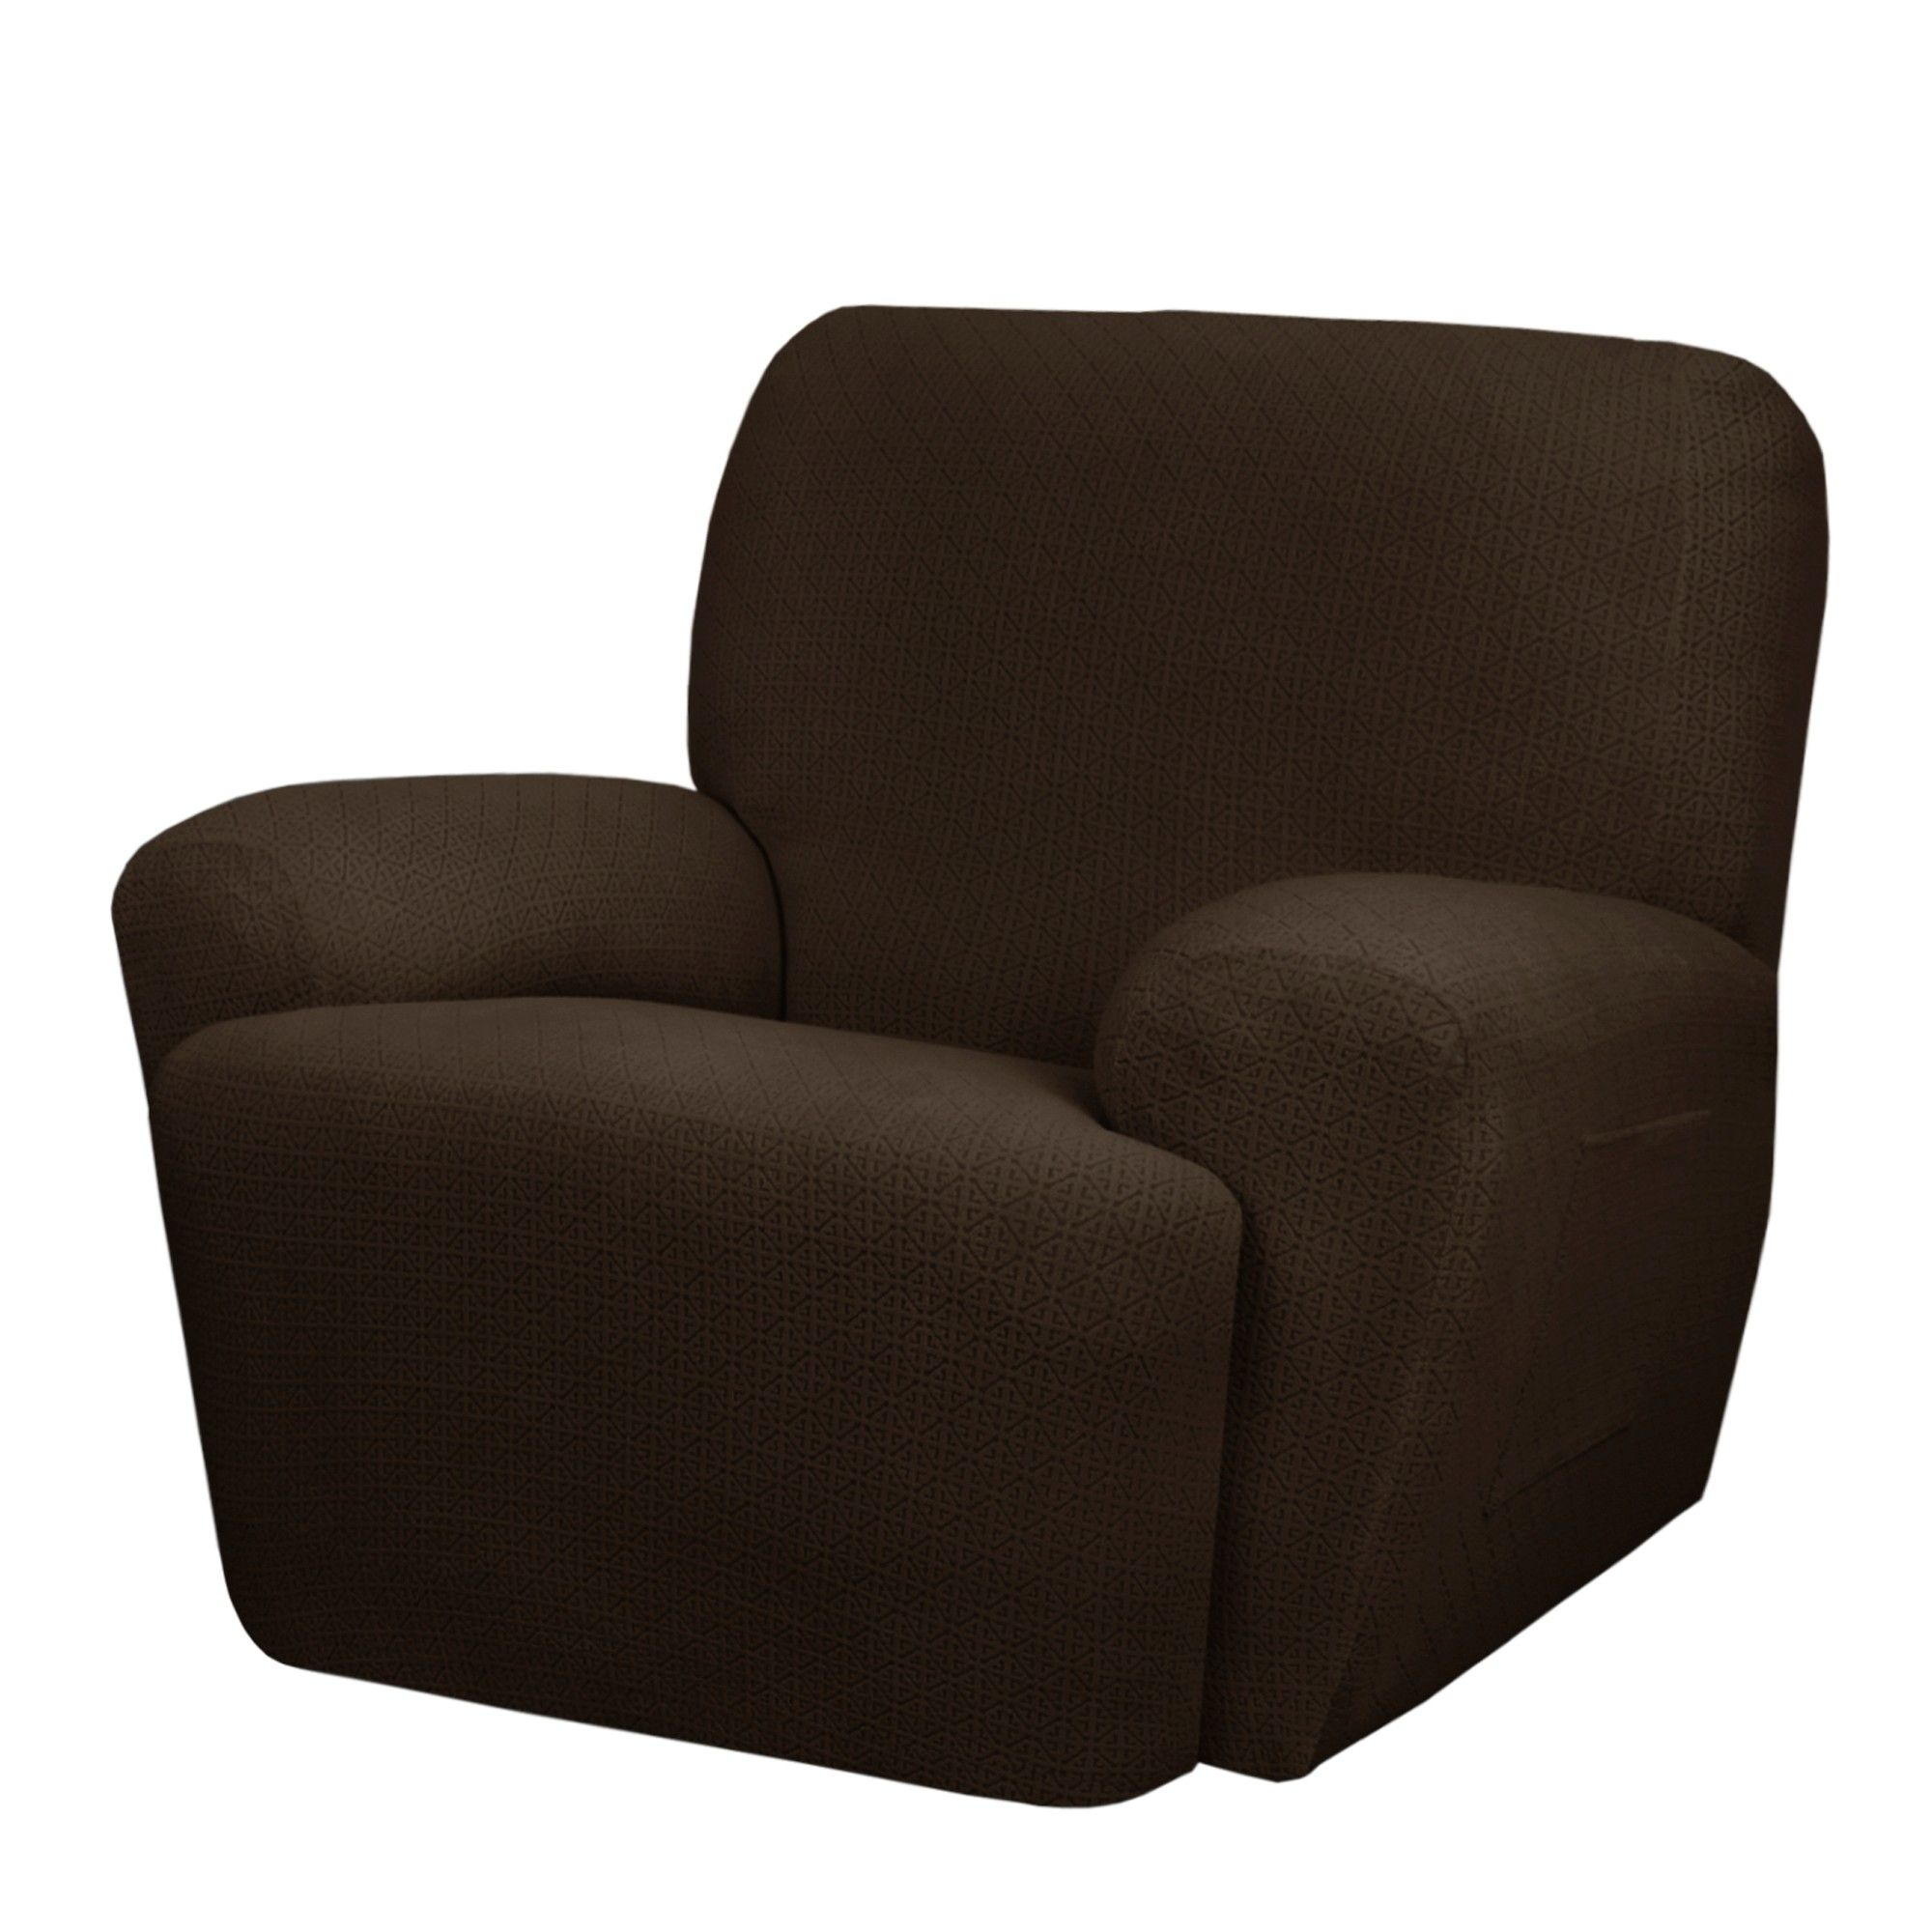 Swell Chocolate Torie Recliner Slipcover 4 Piece Maytex Brown Alphanode Cool Chair Designs And Ideas Alphanodeonline